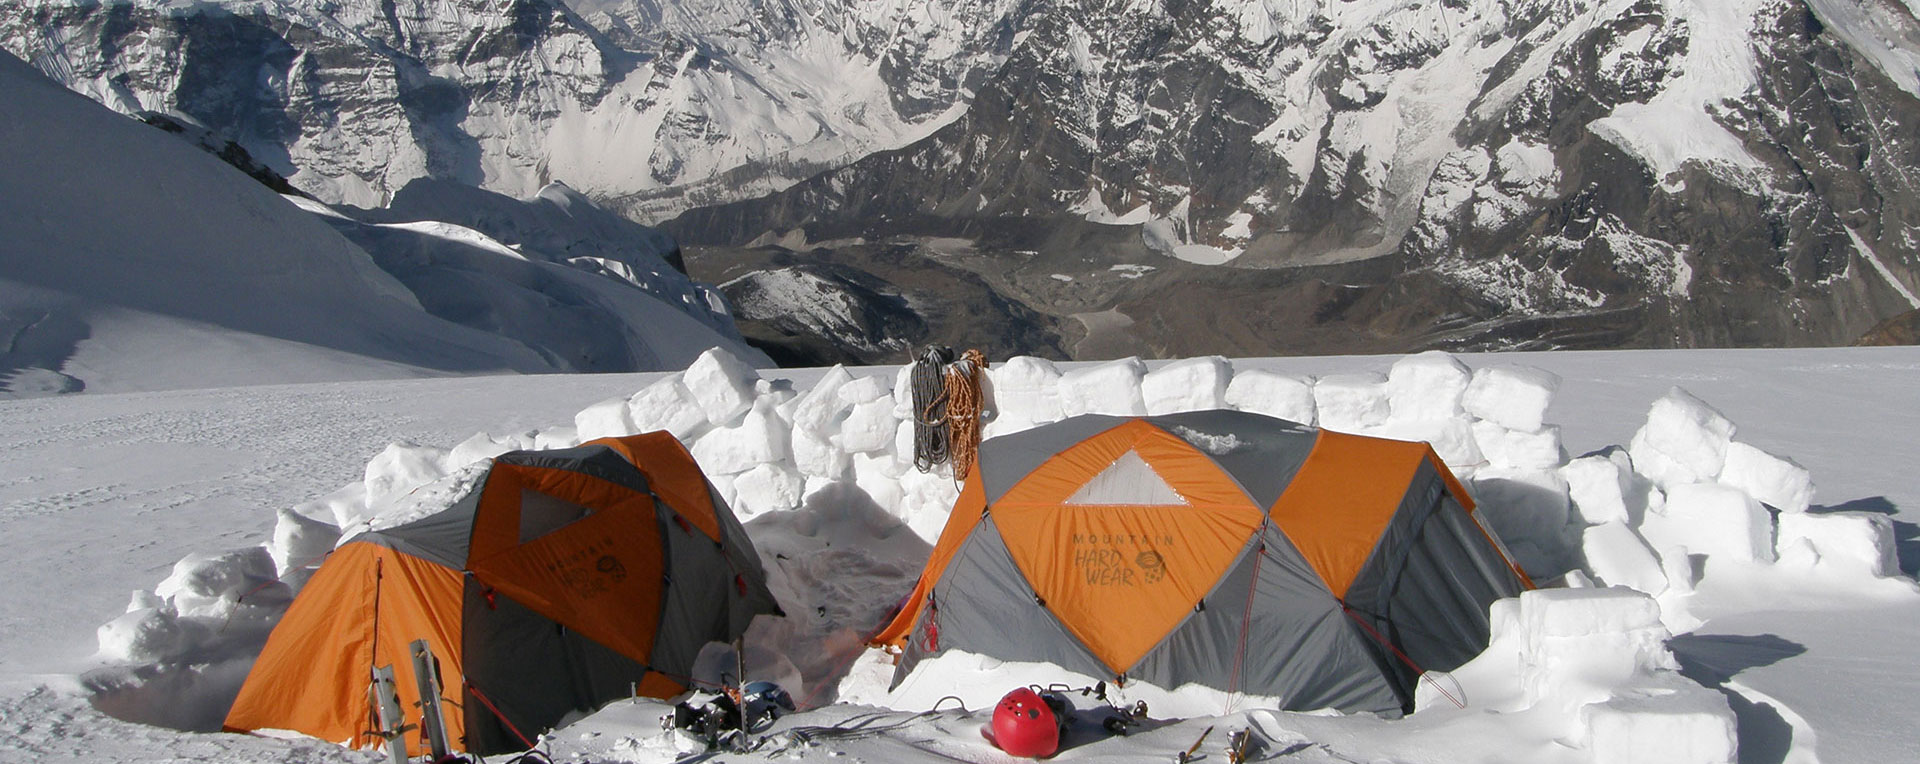 MAKALU BANNER 08 Camp 2 in sun